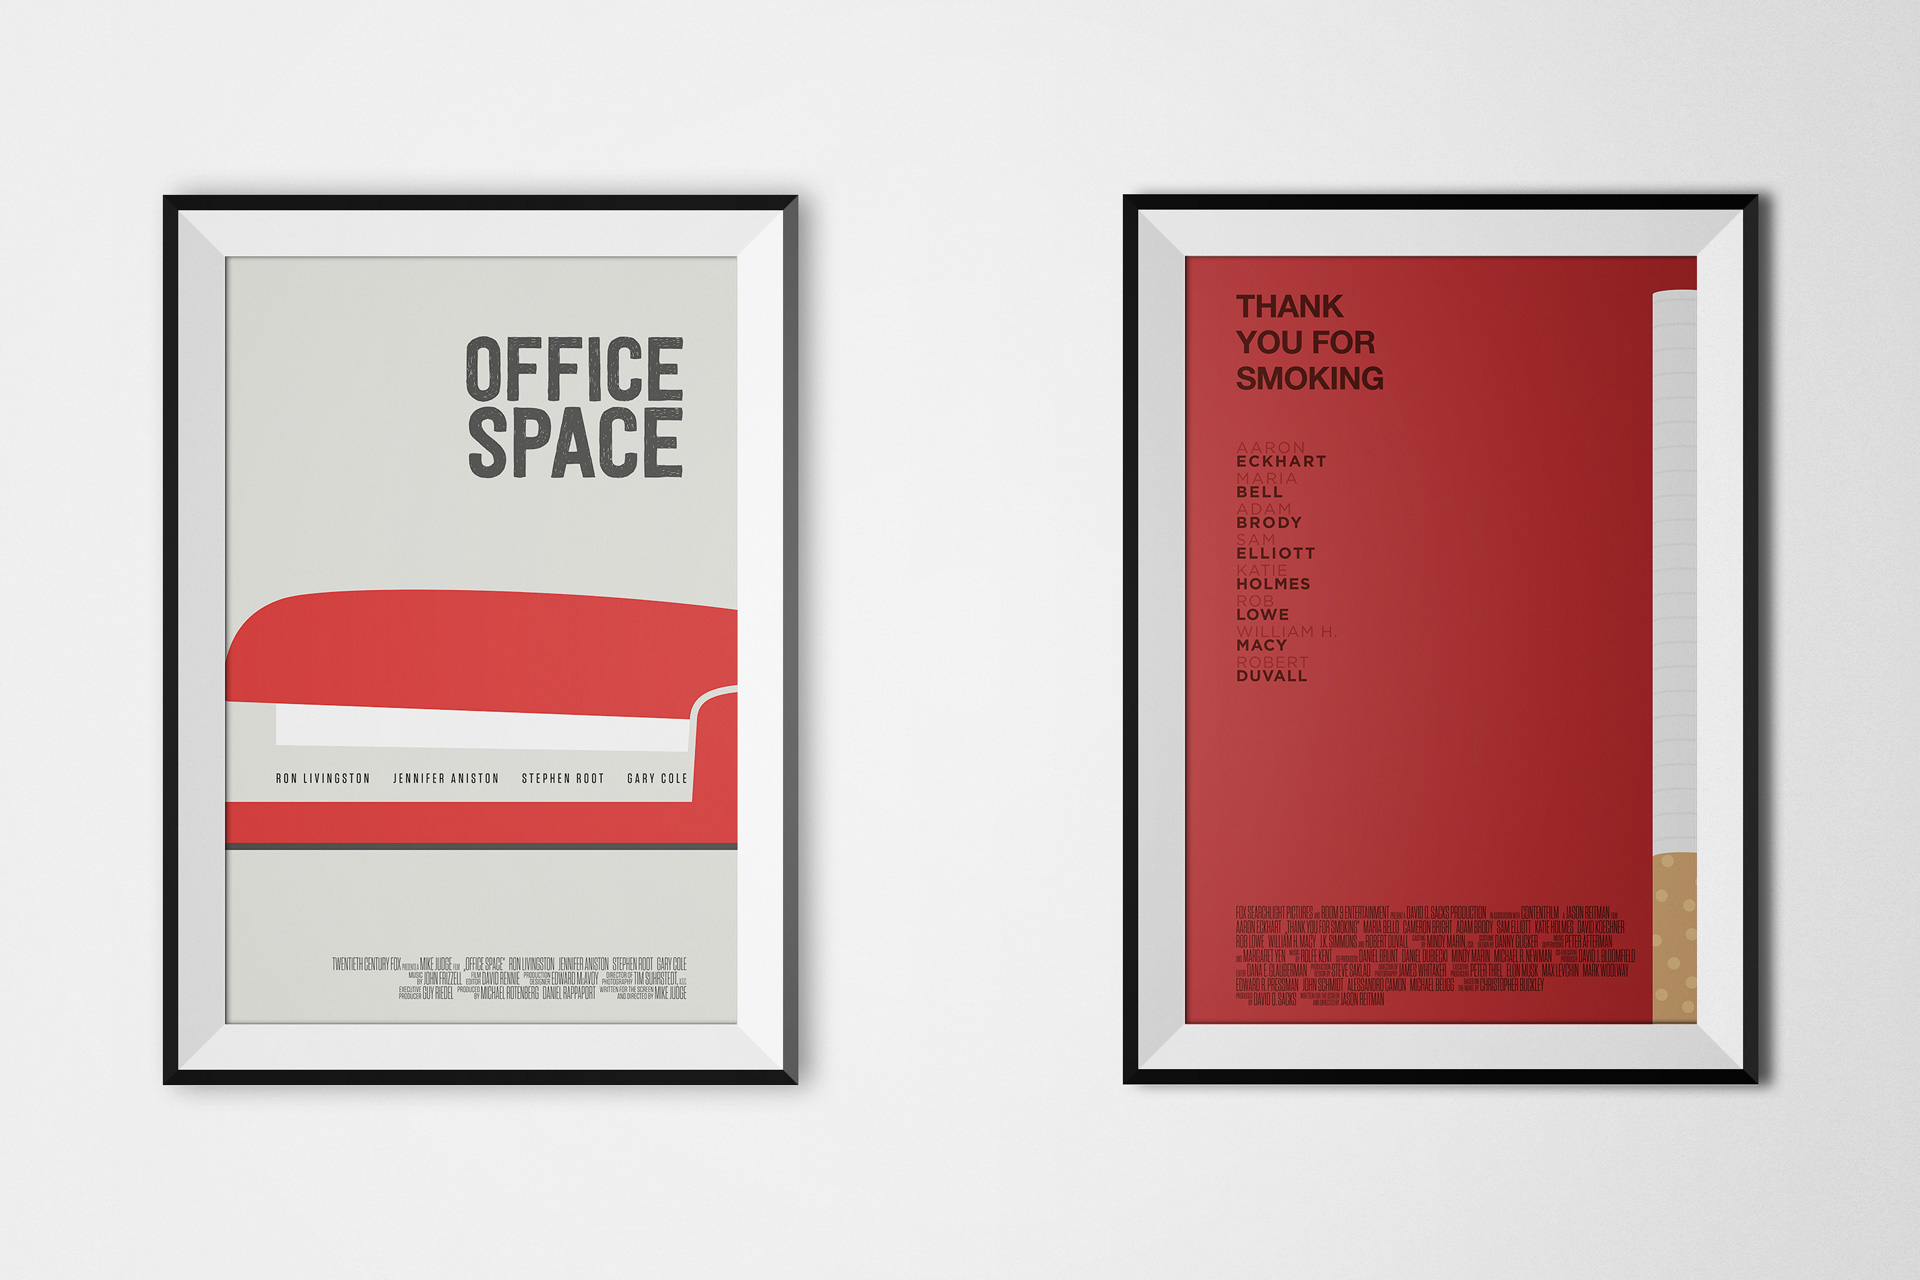 Office Space / Thank you for Smoking